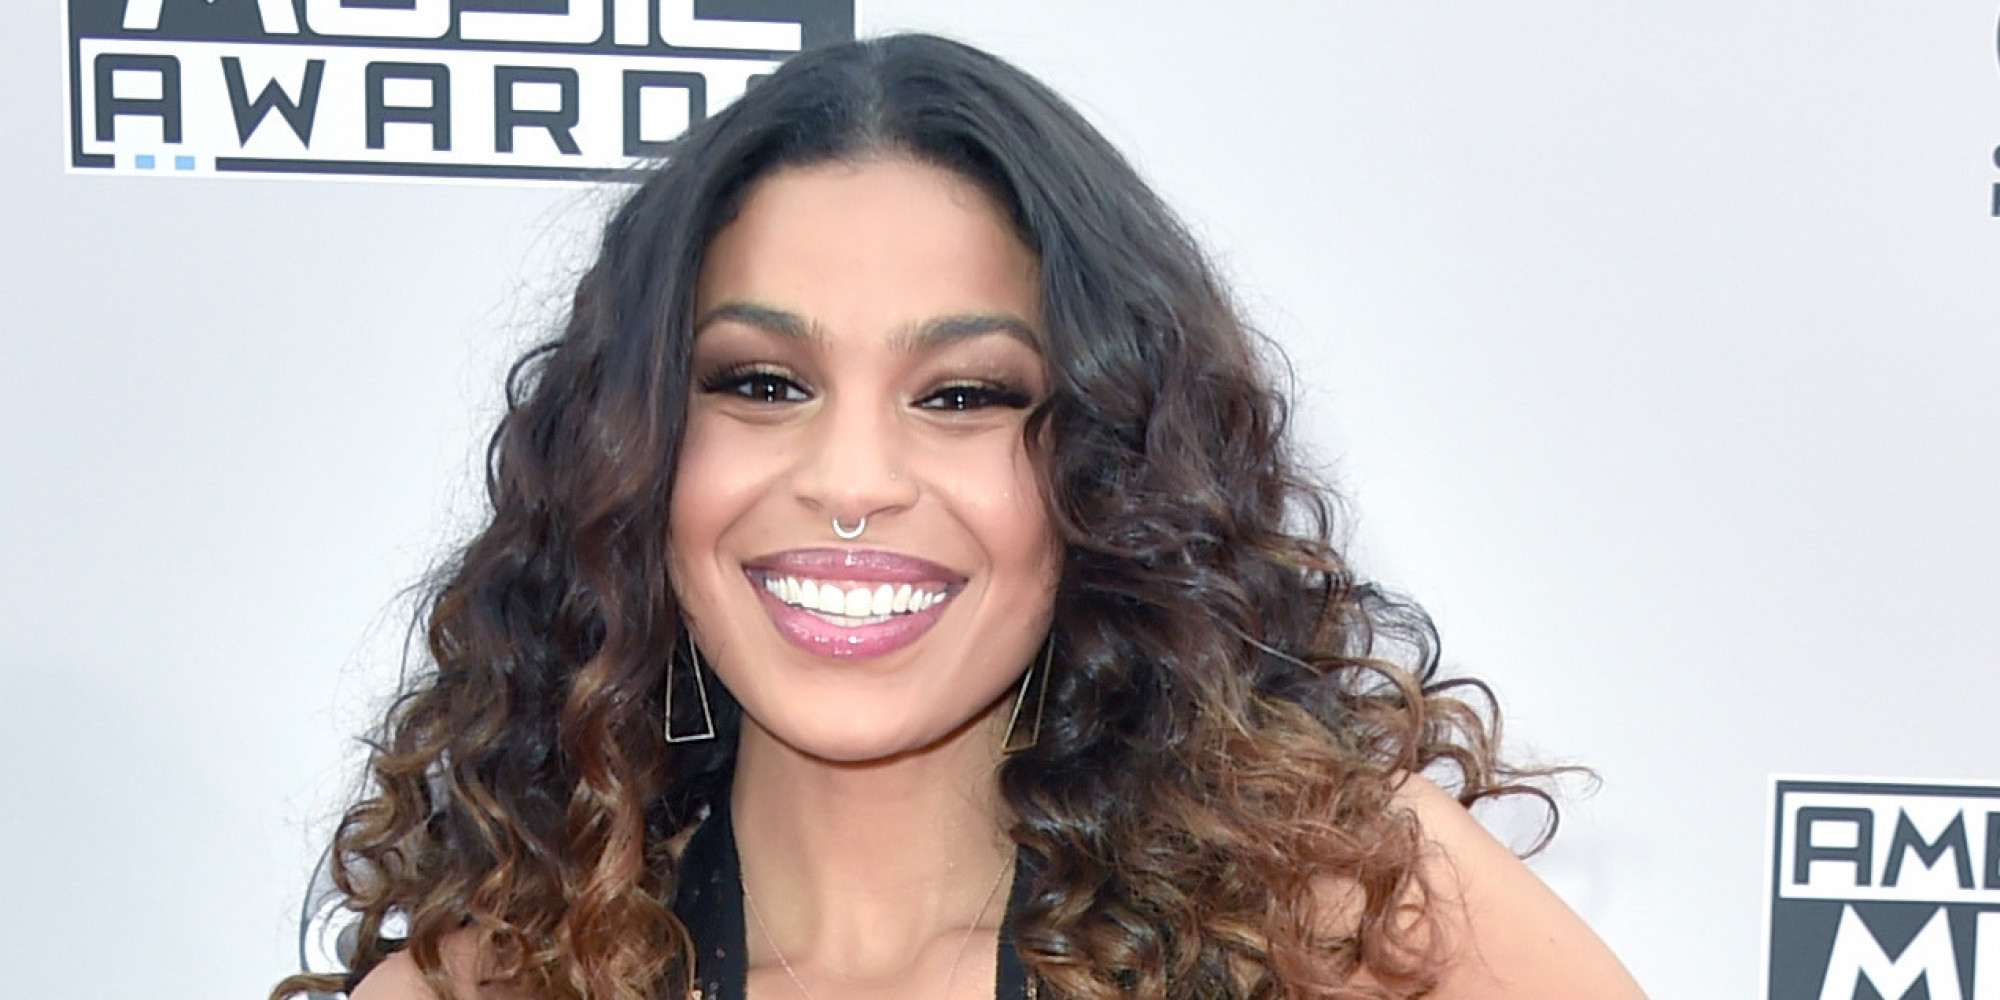 jordin sparks no air lyrics